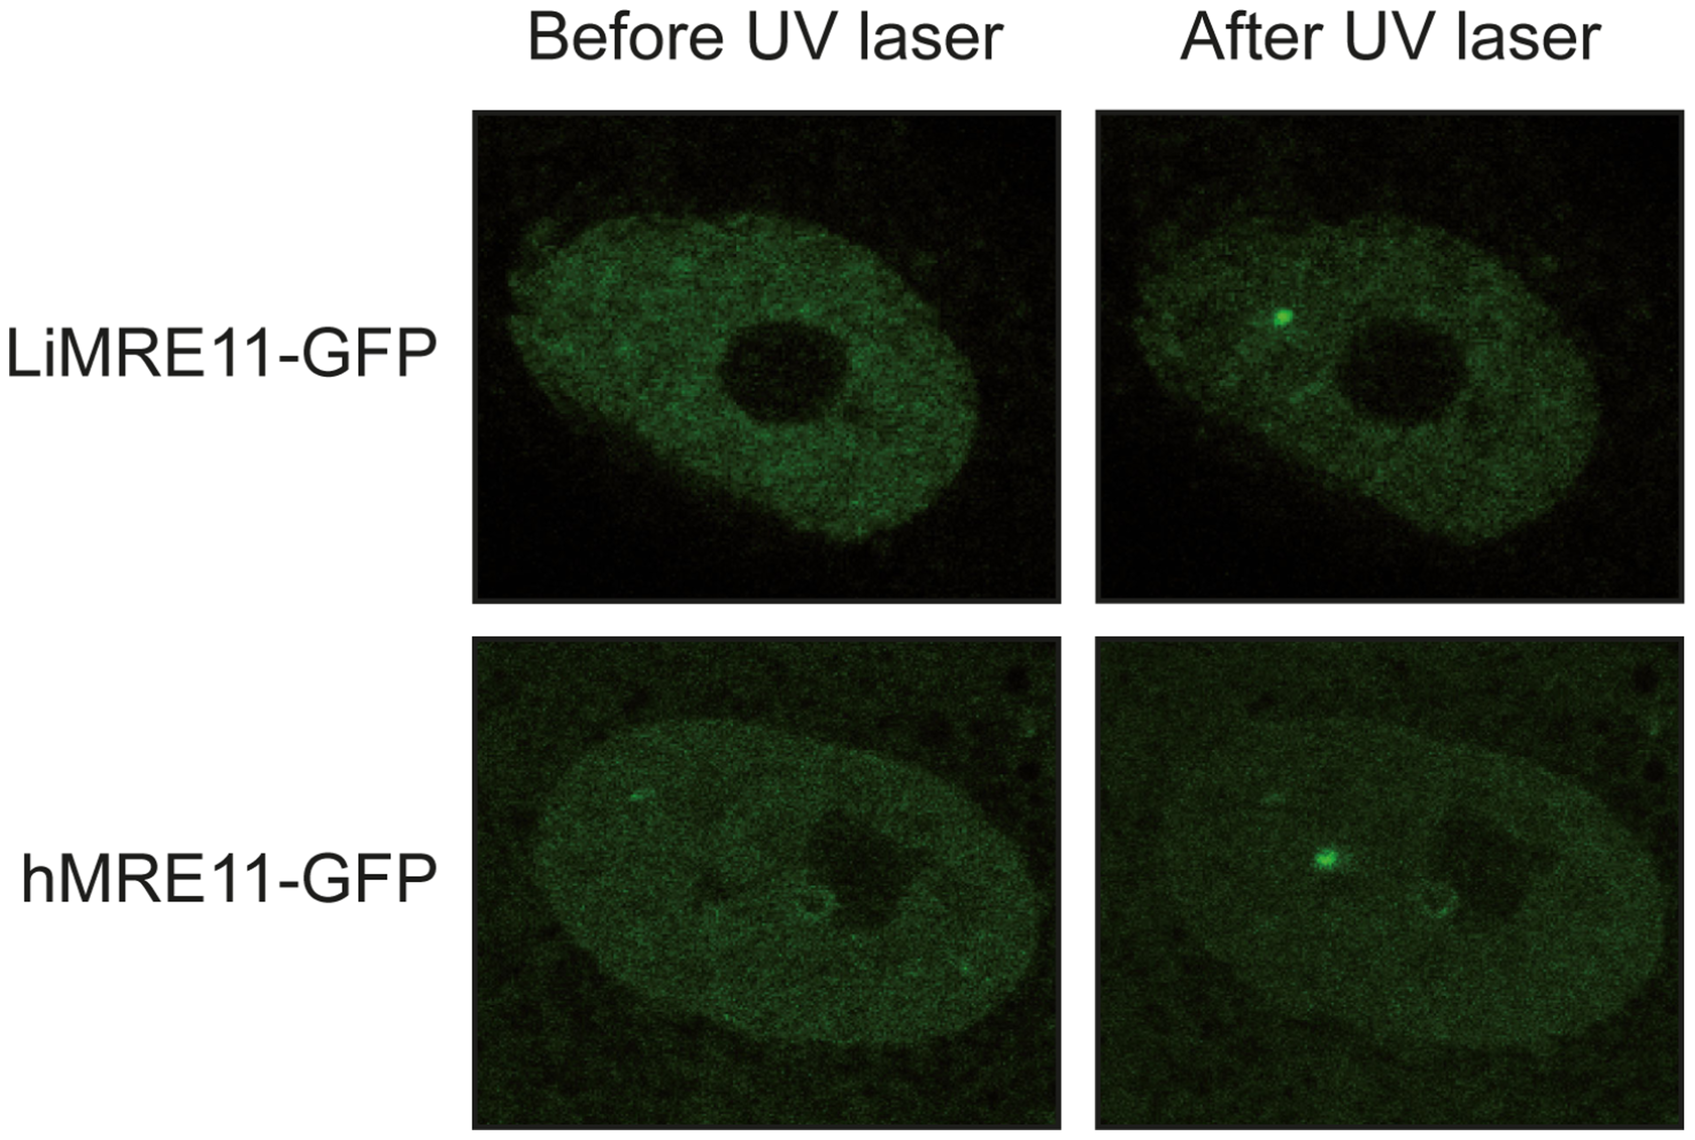 Fluorescence recovery after photobleaching analysis after DNA damage induction in UV-irradiated cells.